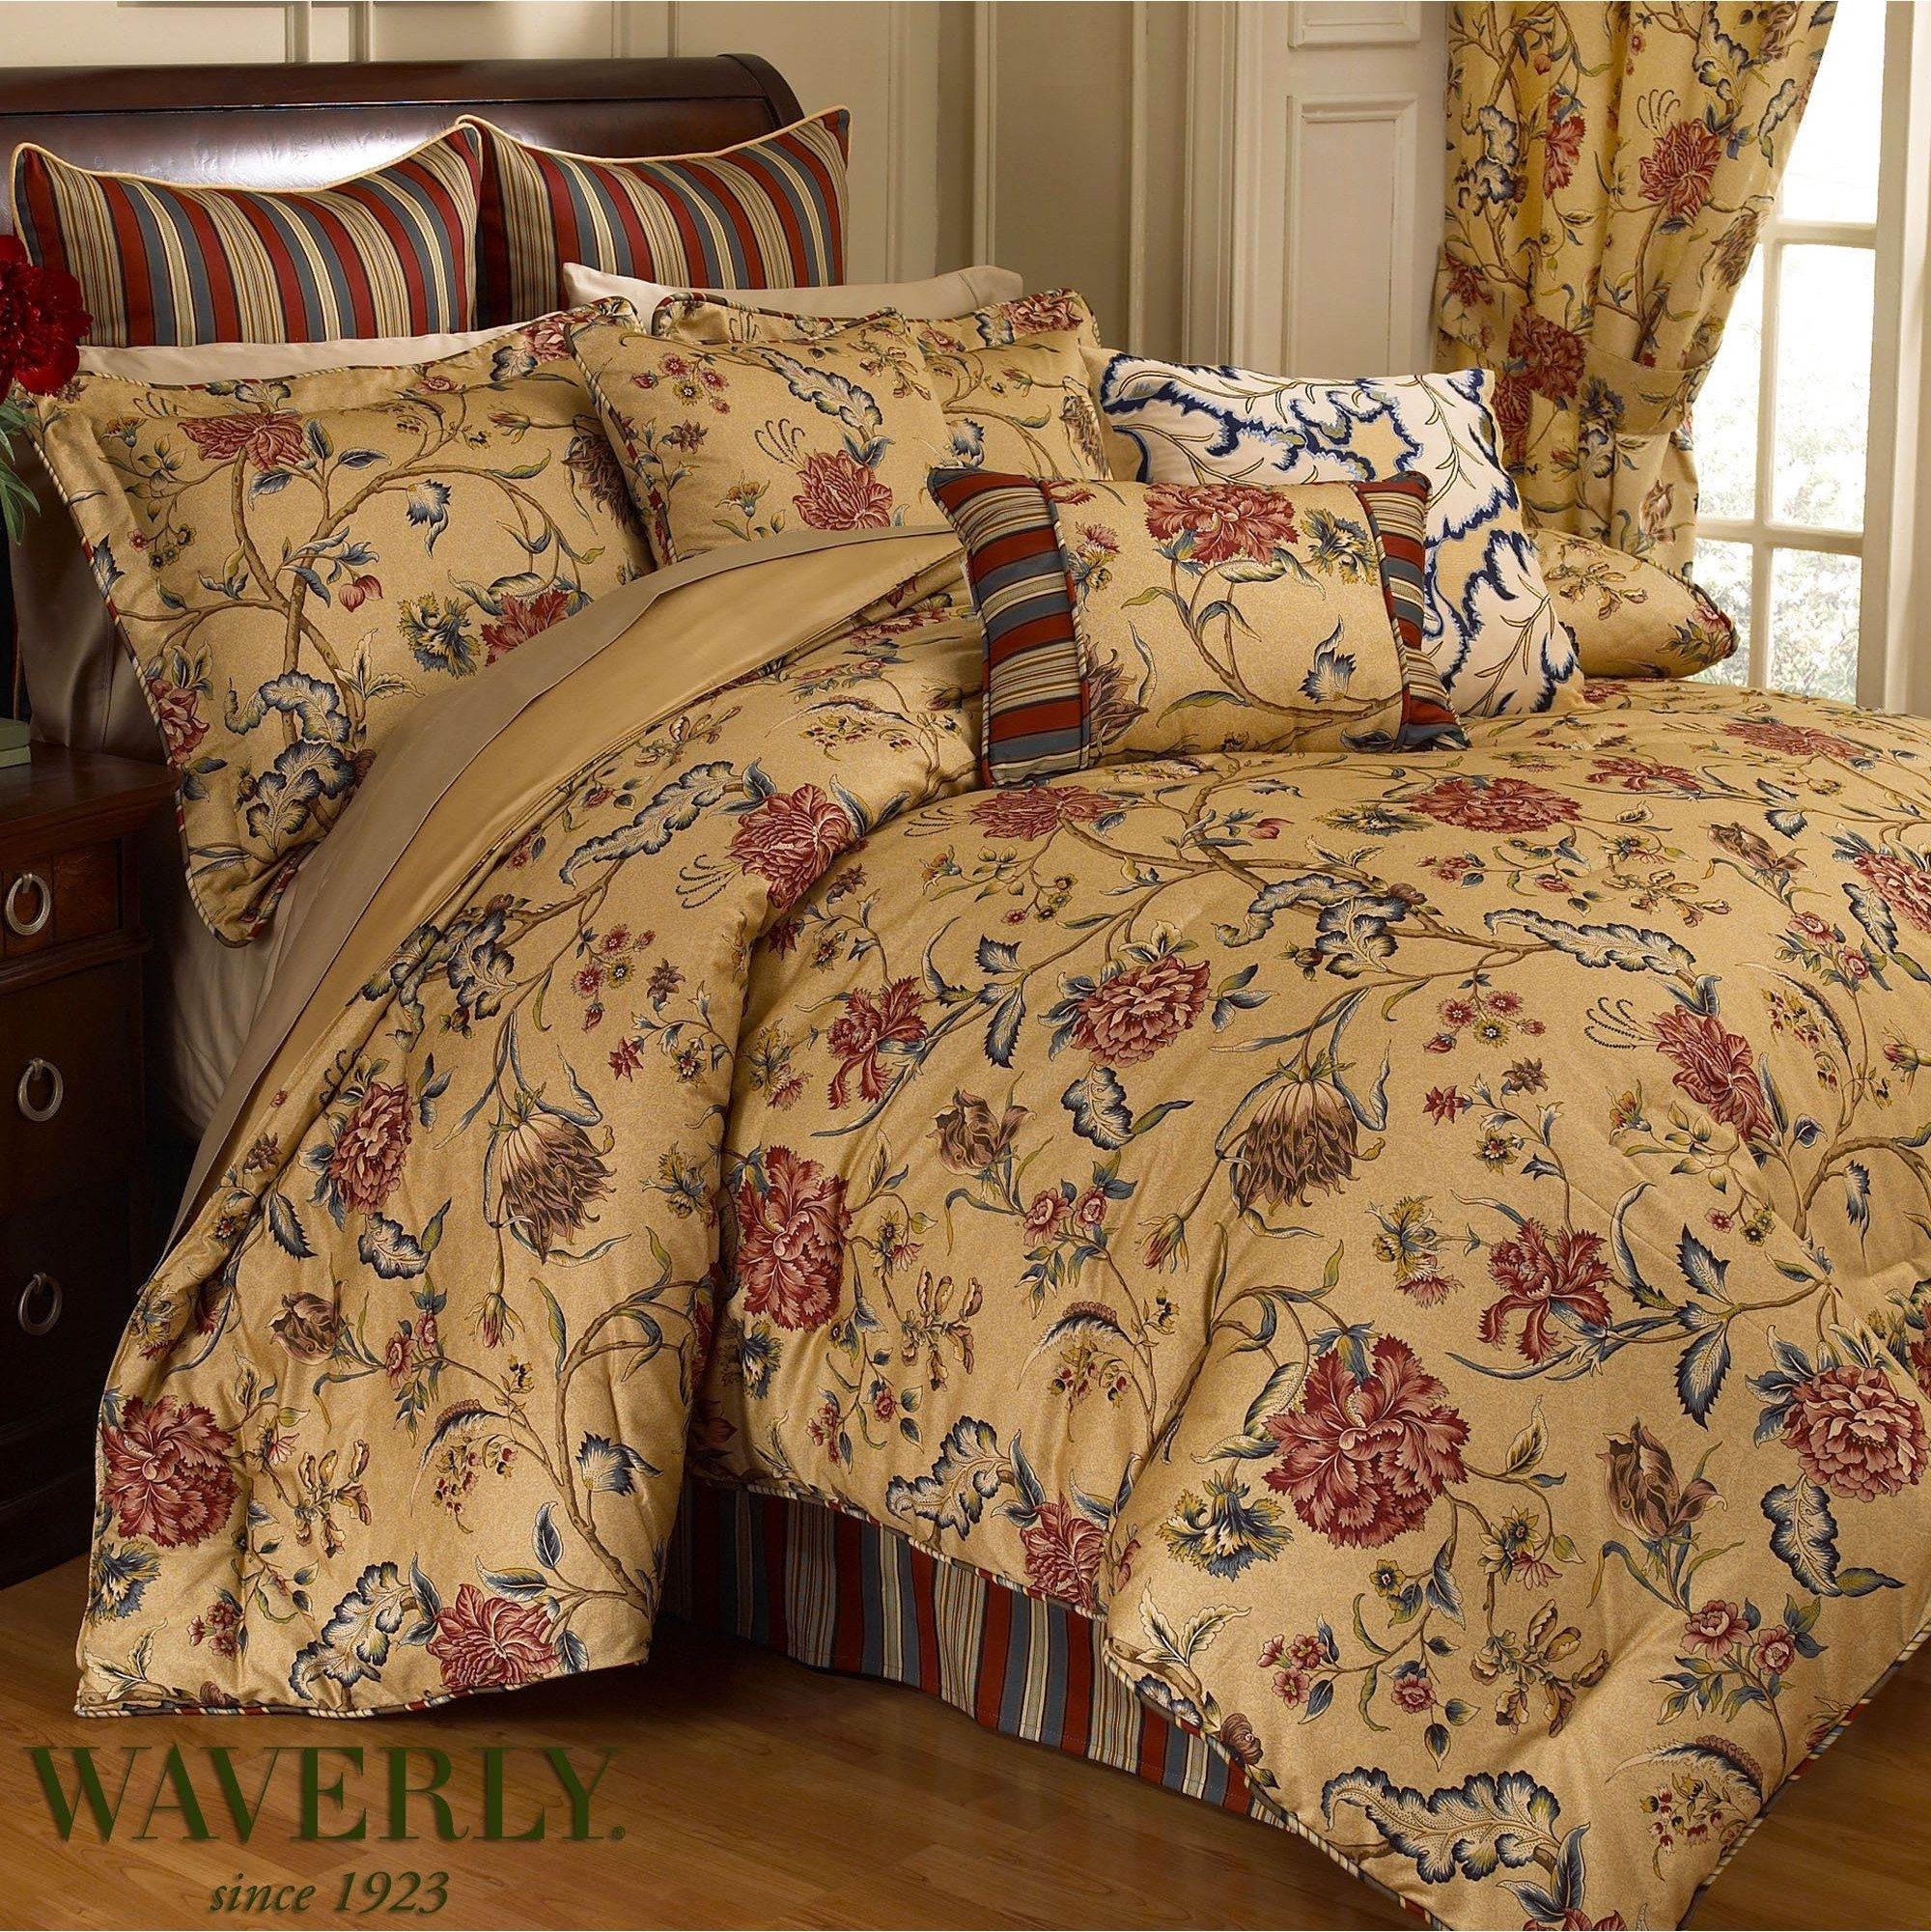 Waverly Spice Of Life Comforter Set King Bedding French Country Cottage Floral